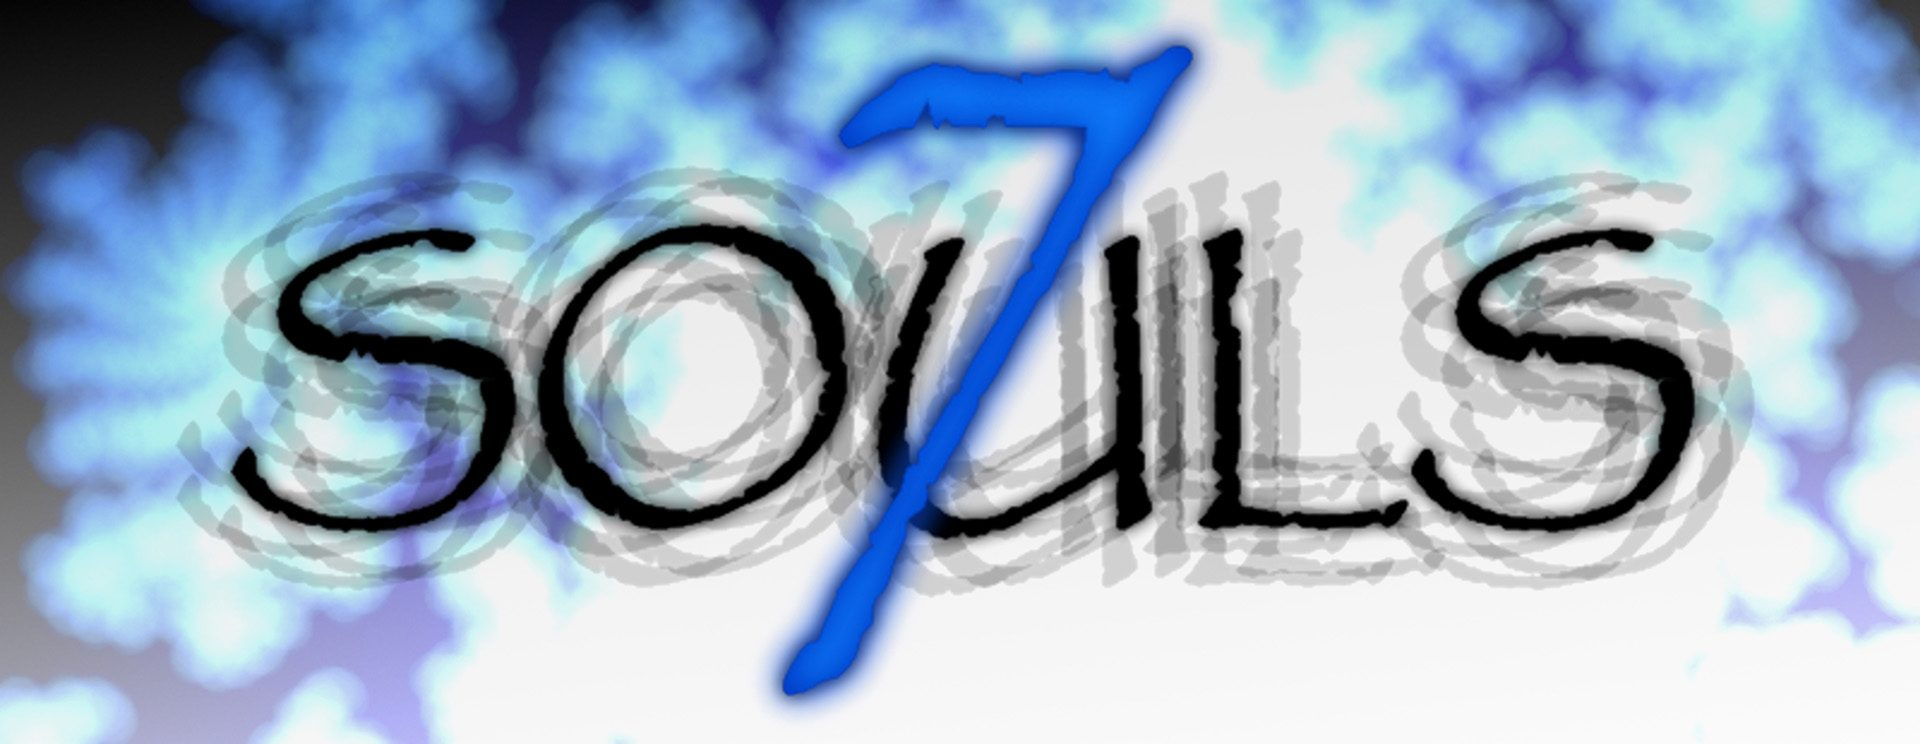 cropped-banner_small-1.jpg